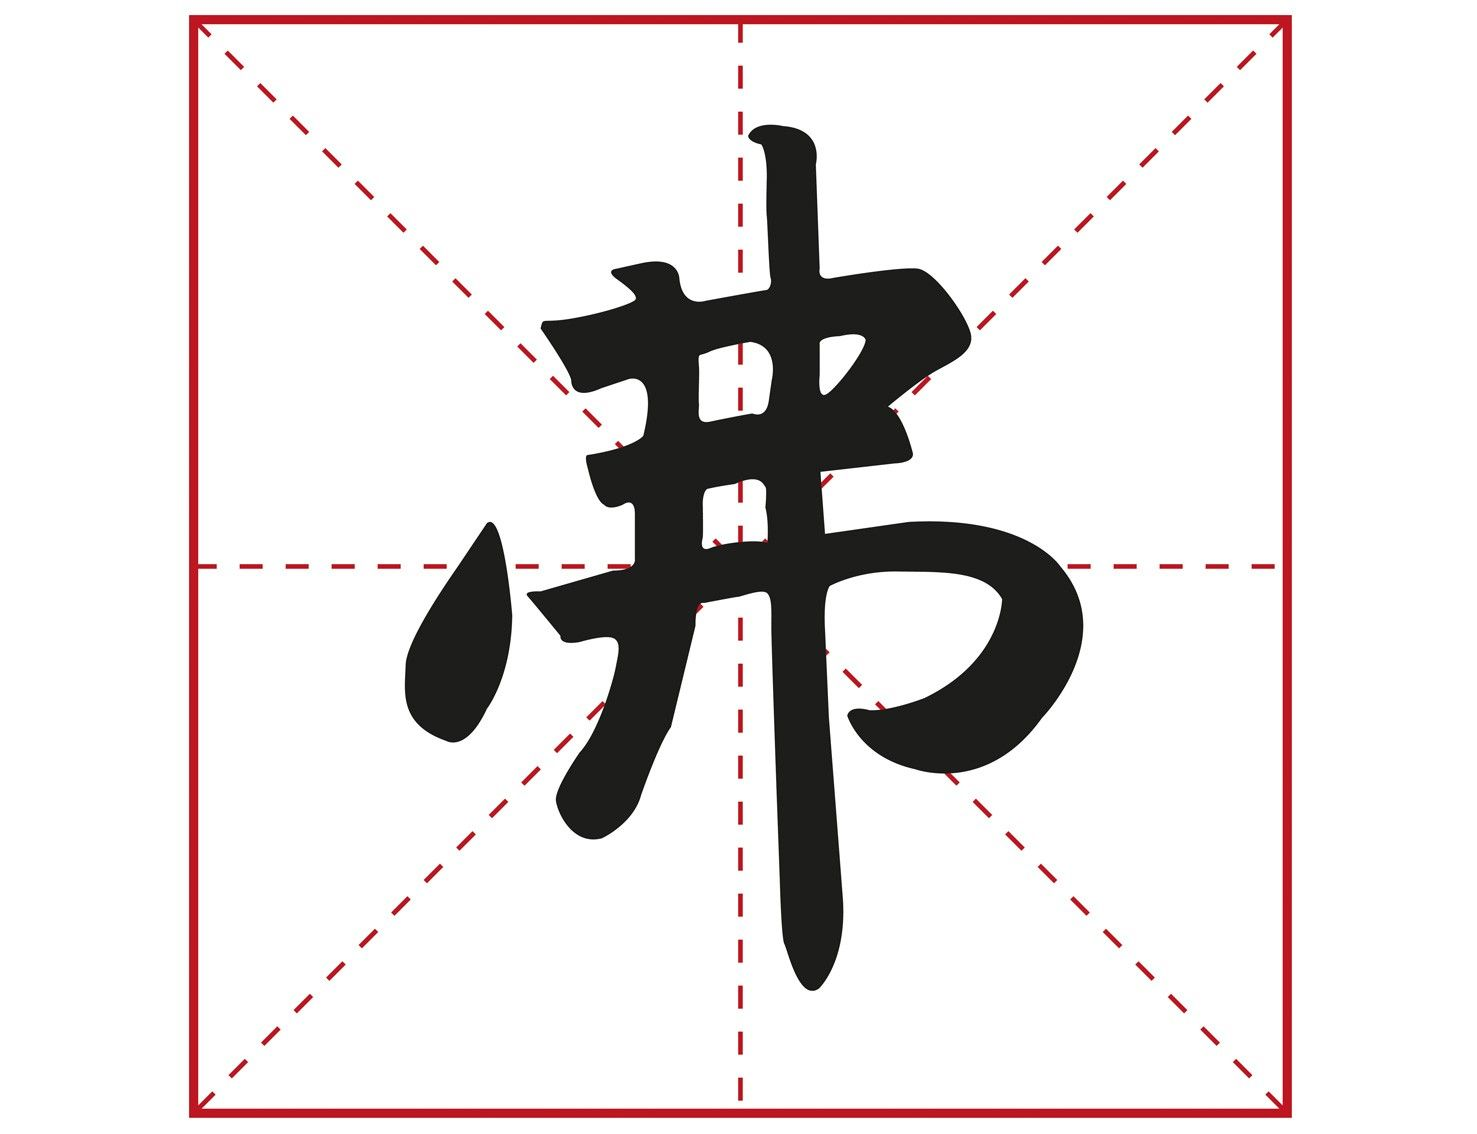 Chinese symbol for strength google search symbols meanings chinese symbol for strength google search biocorpaavc Image collections